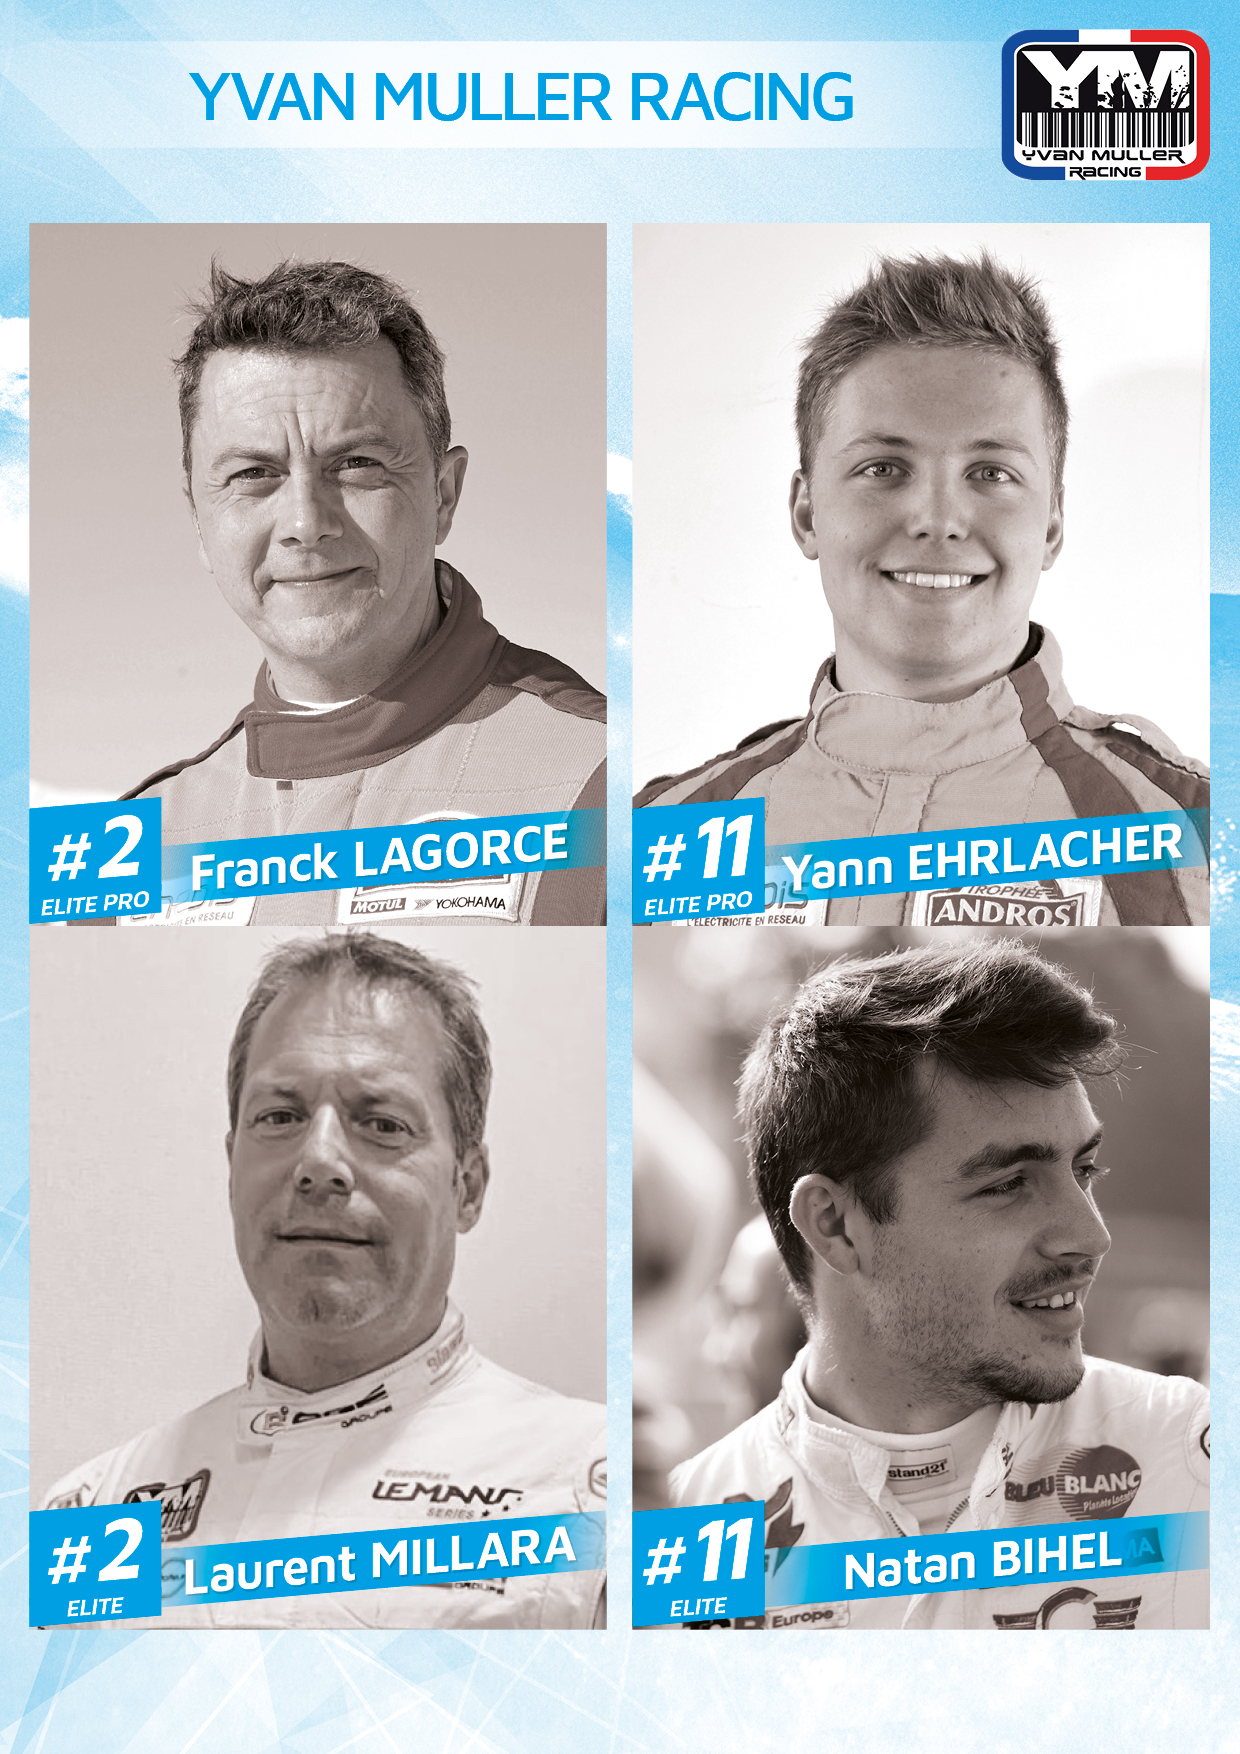 Engages Yvan Muller Racing